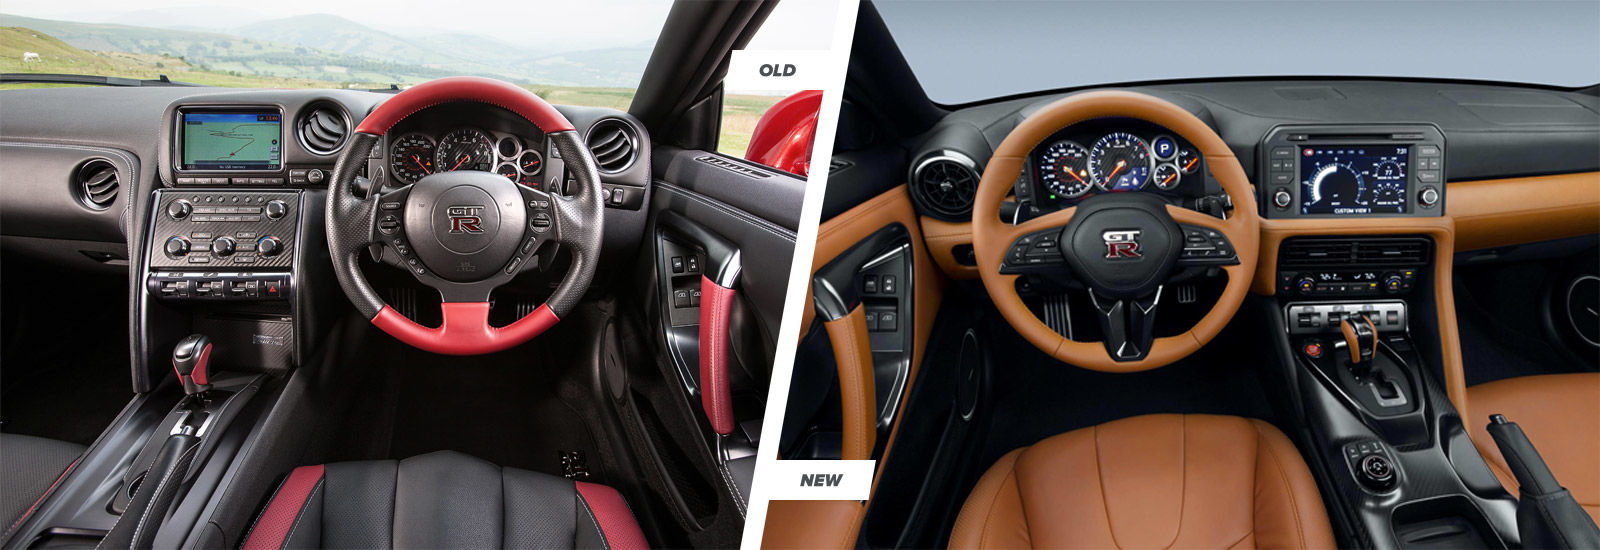 Nissan nissan gtr interior : Nissan GT-R facelift: old vs new compared | carwow